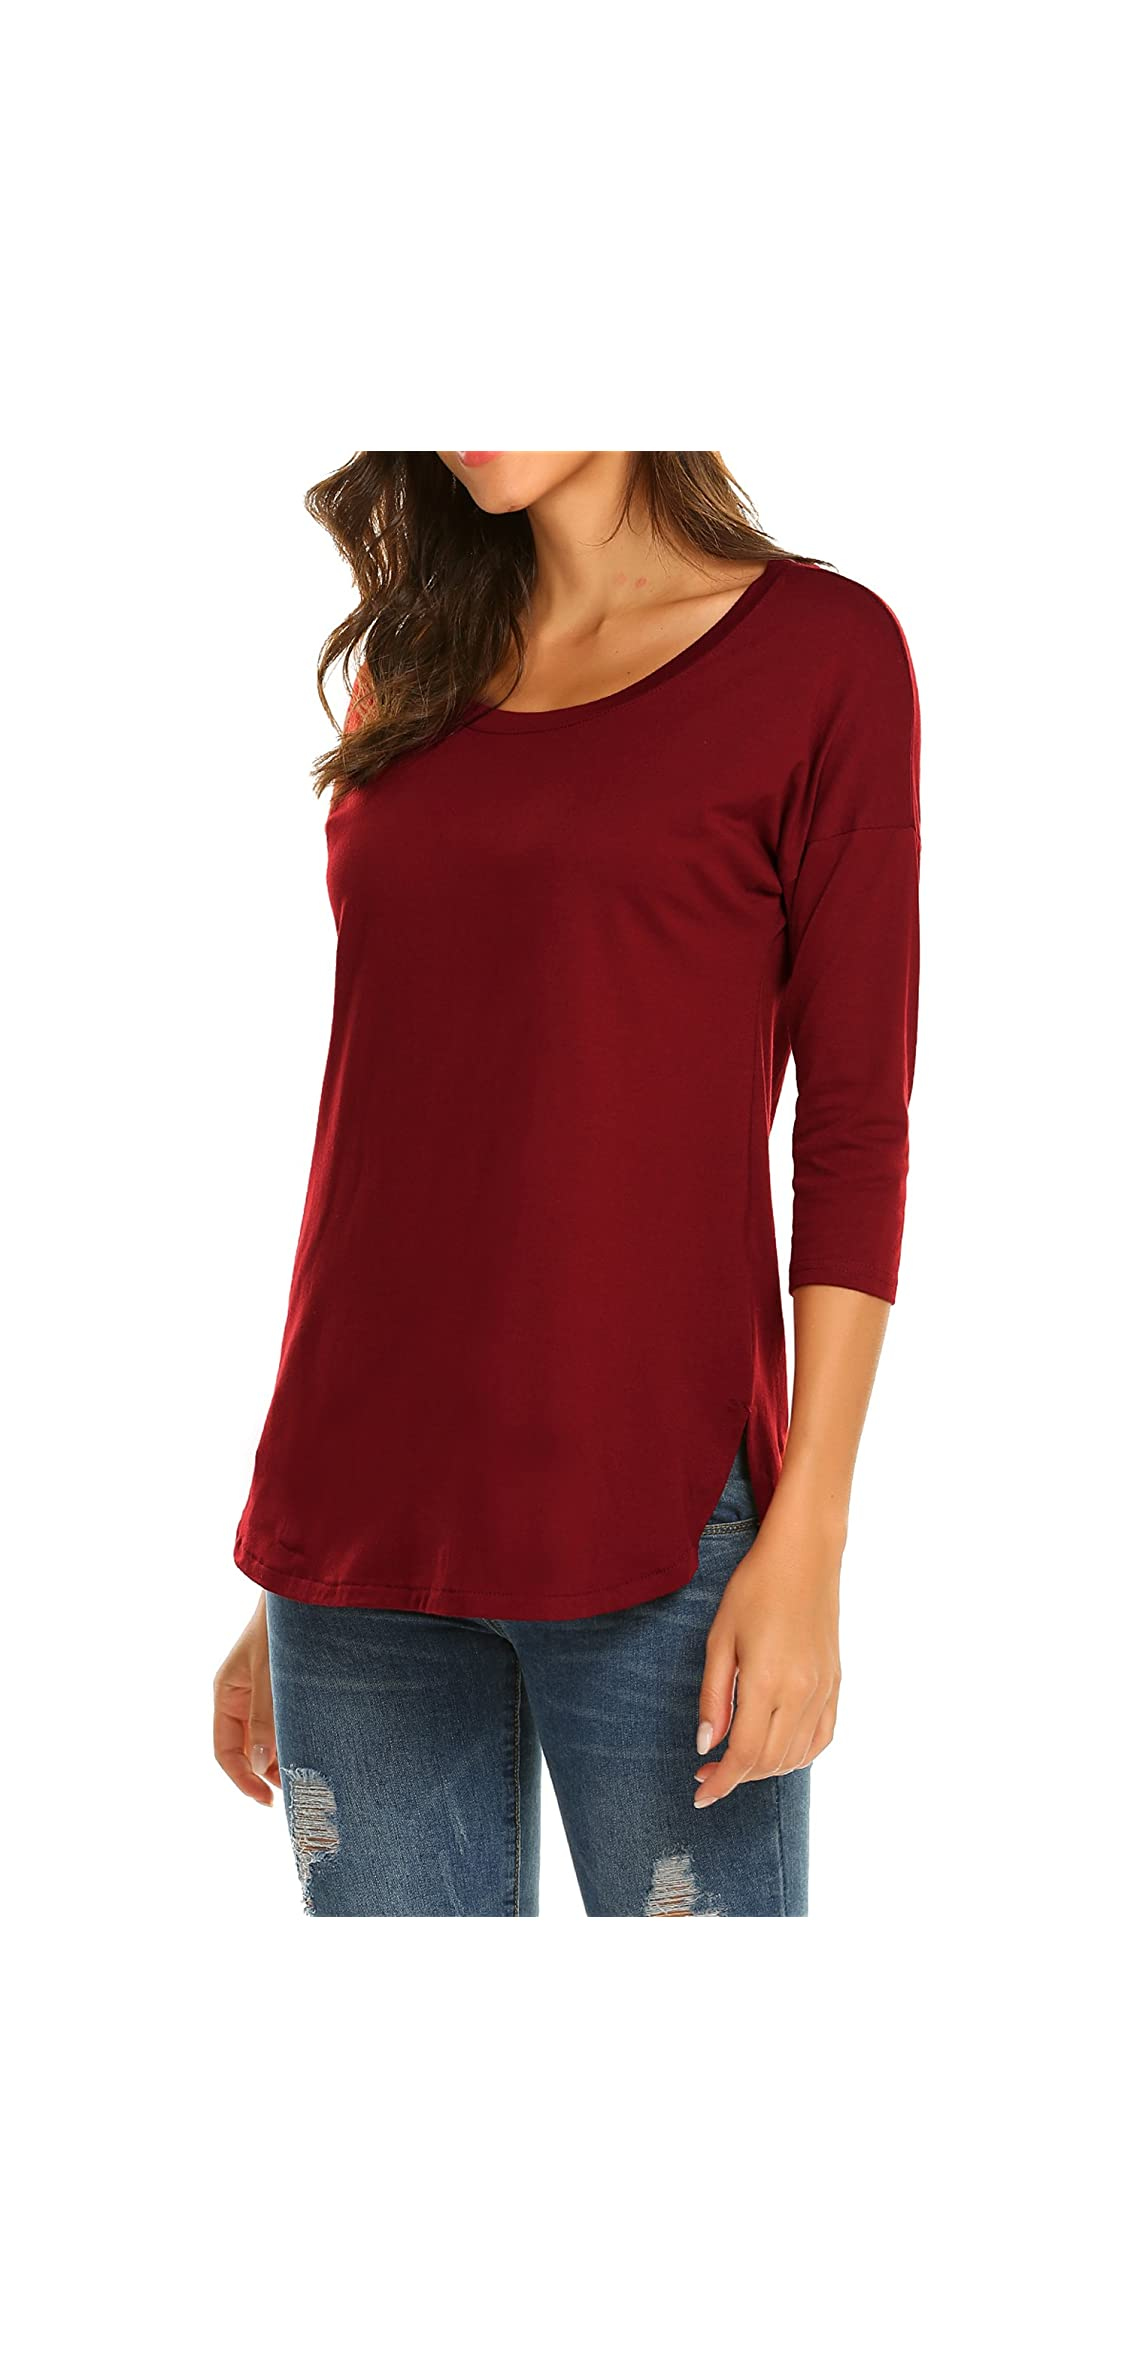 Women's Casual / Sleeve Loose Tunic Tops Scoop Neck